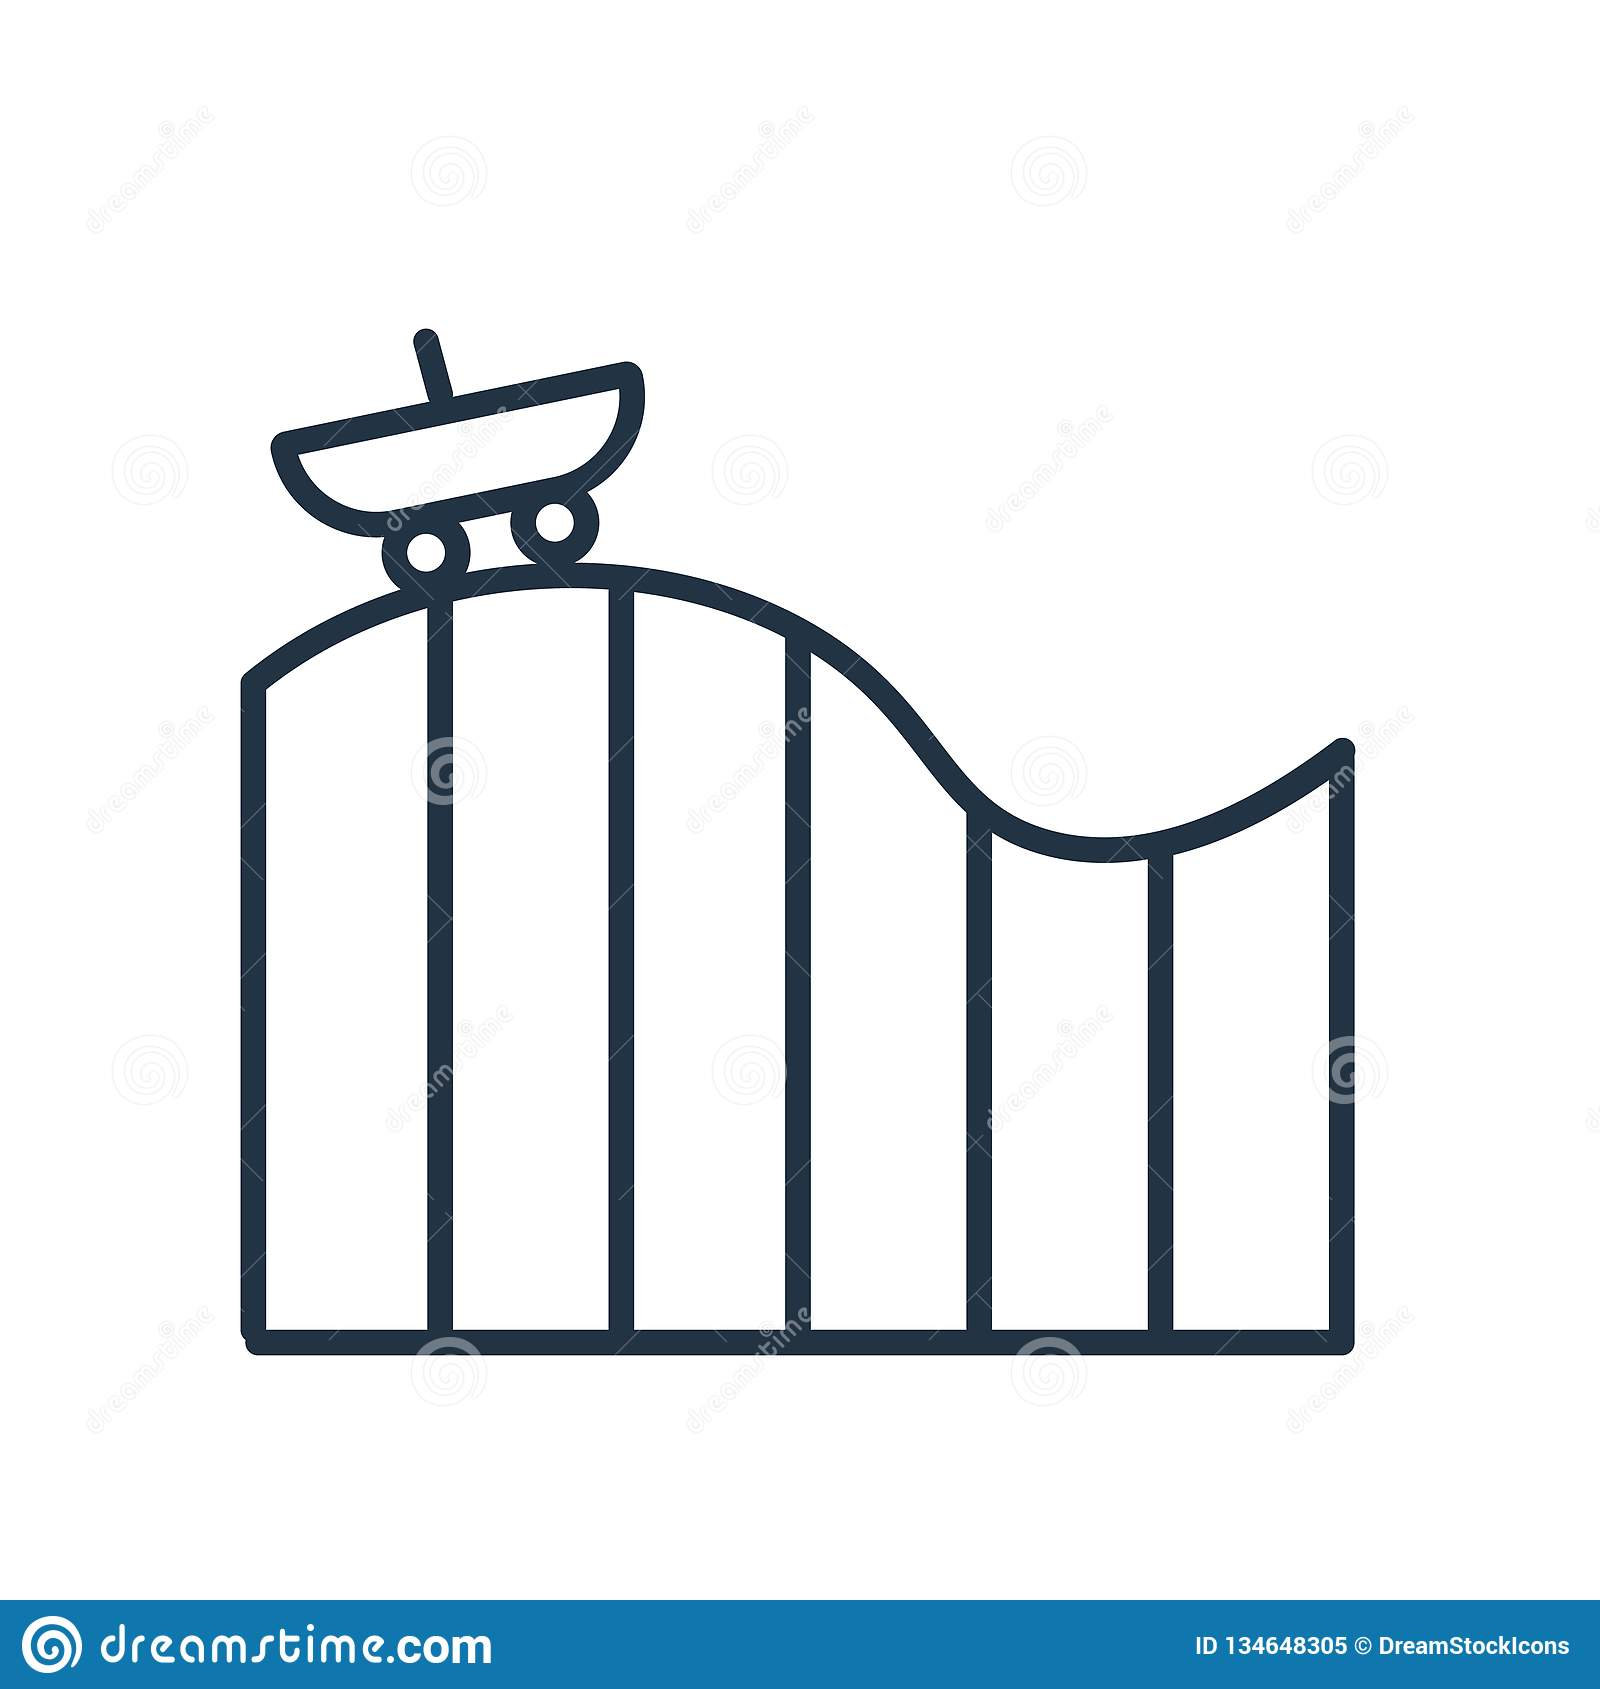 Roller coaster icon vector isolated on white background, Roller coaster sign